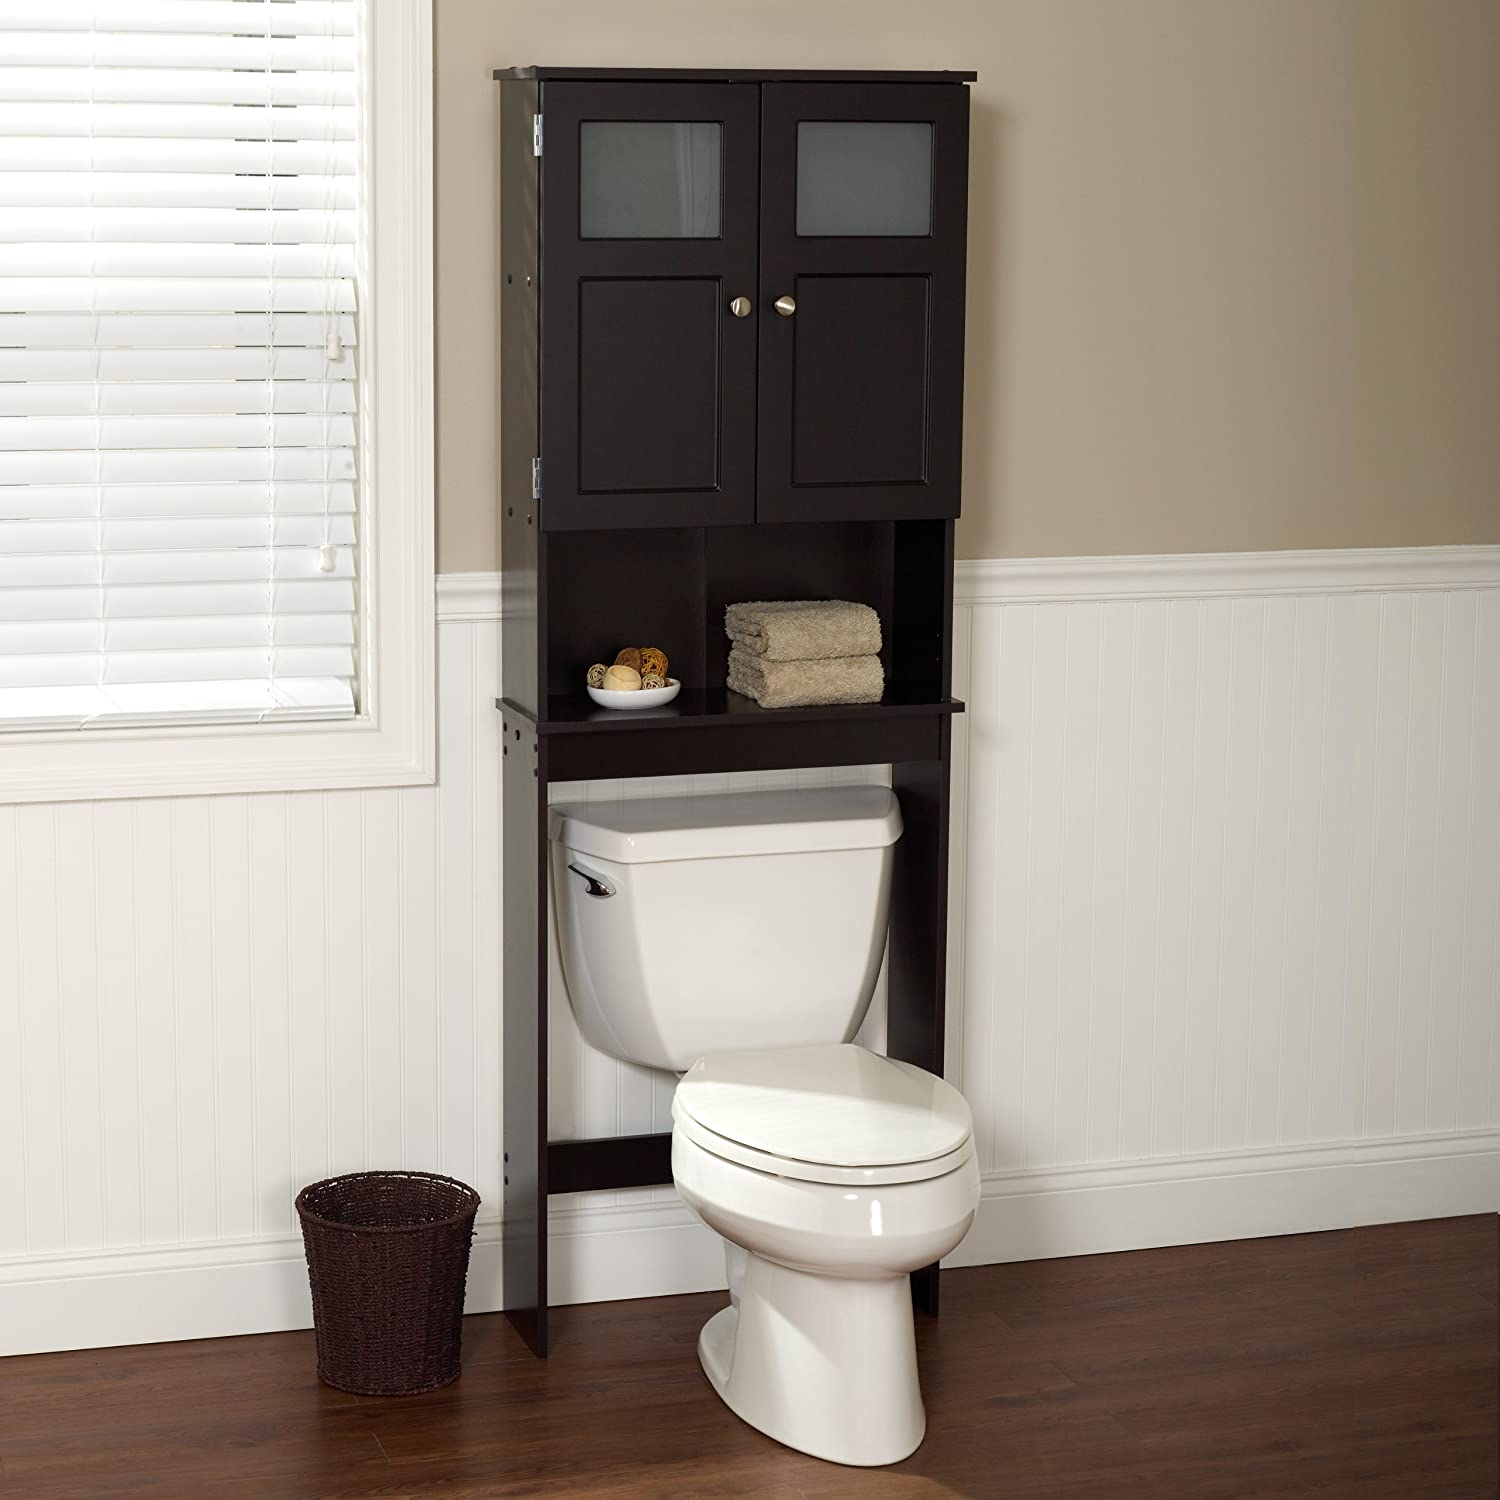 Amazon.com: Zenna Home 9820CHBB, Bathroom Spacesaver, Espresso/Frosted  Glass: Home & Kitchen